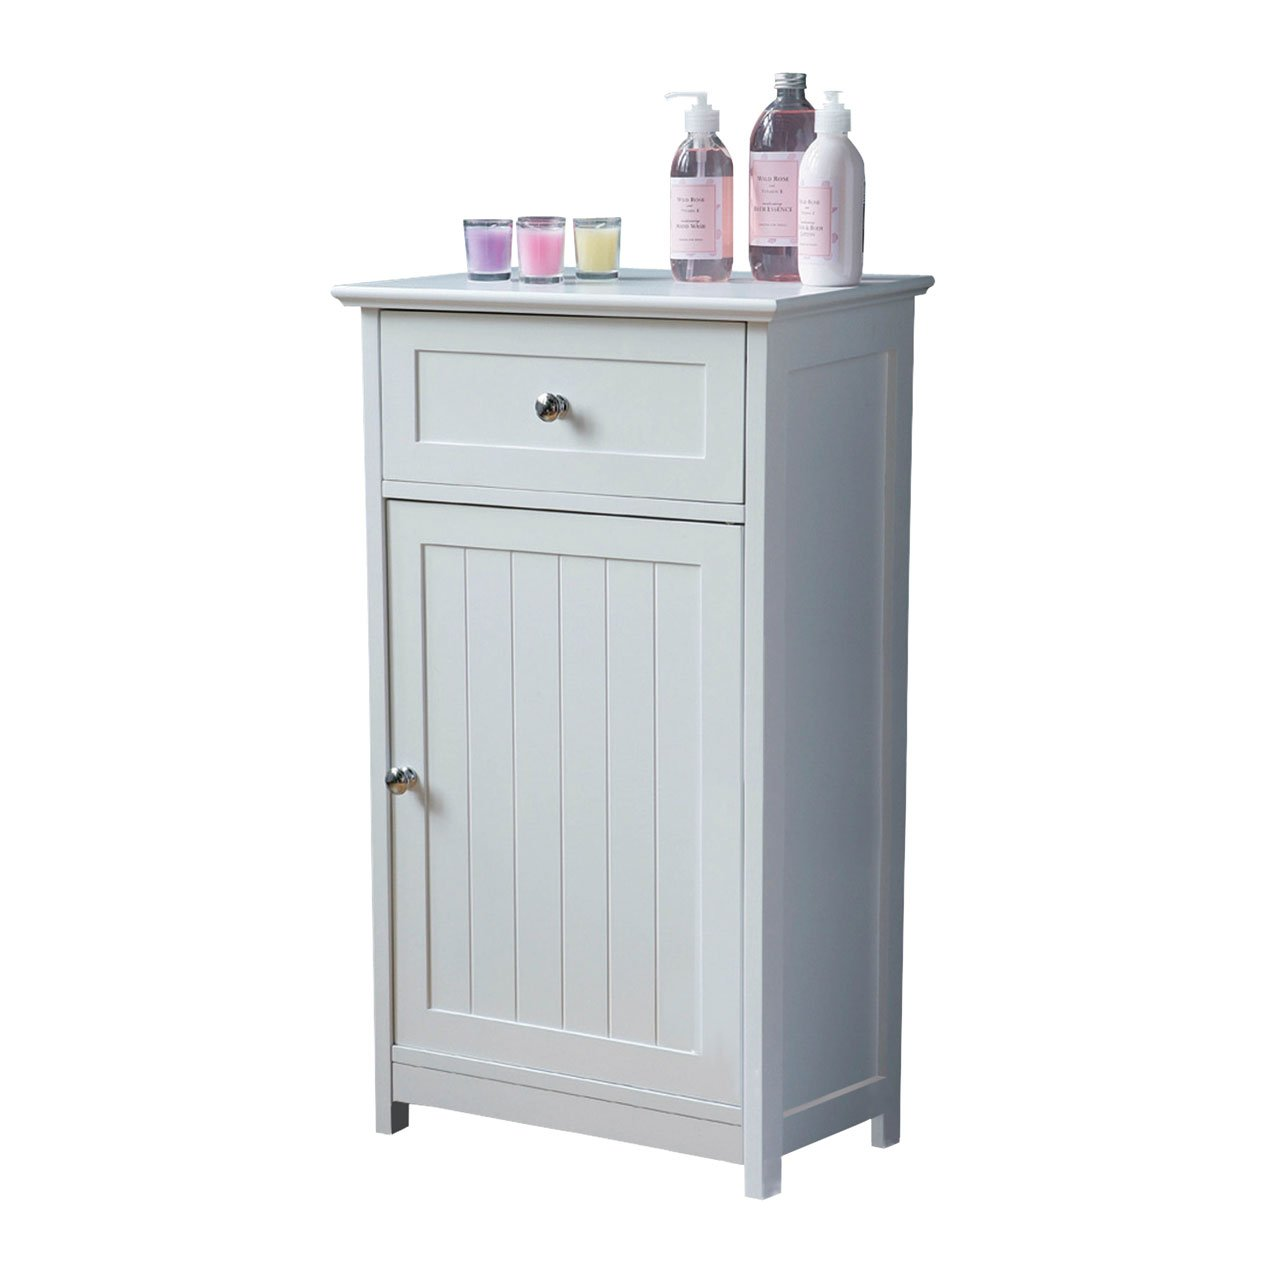 STORAGE CUPBOARD WHITE W/TOP DRAWER FLOOR STANDING: Amazon.co.uk ...